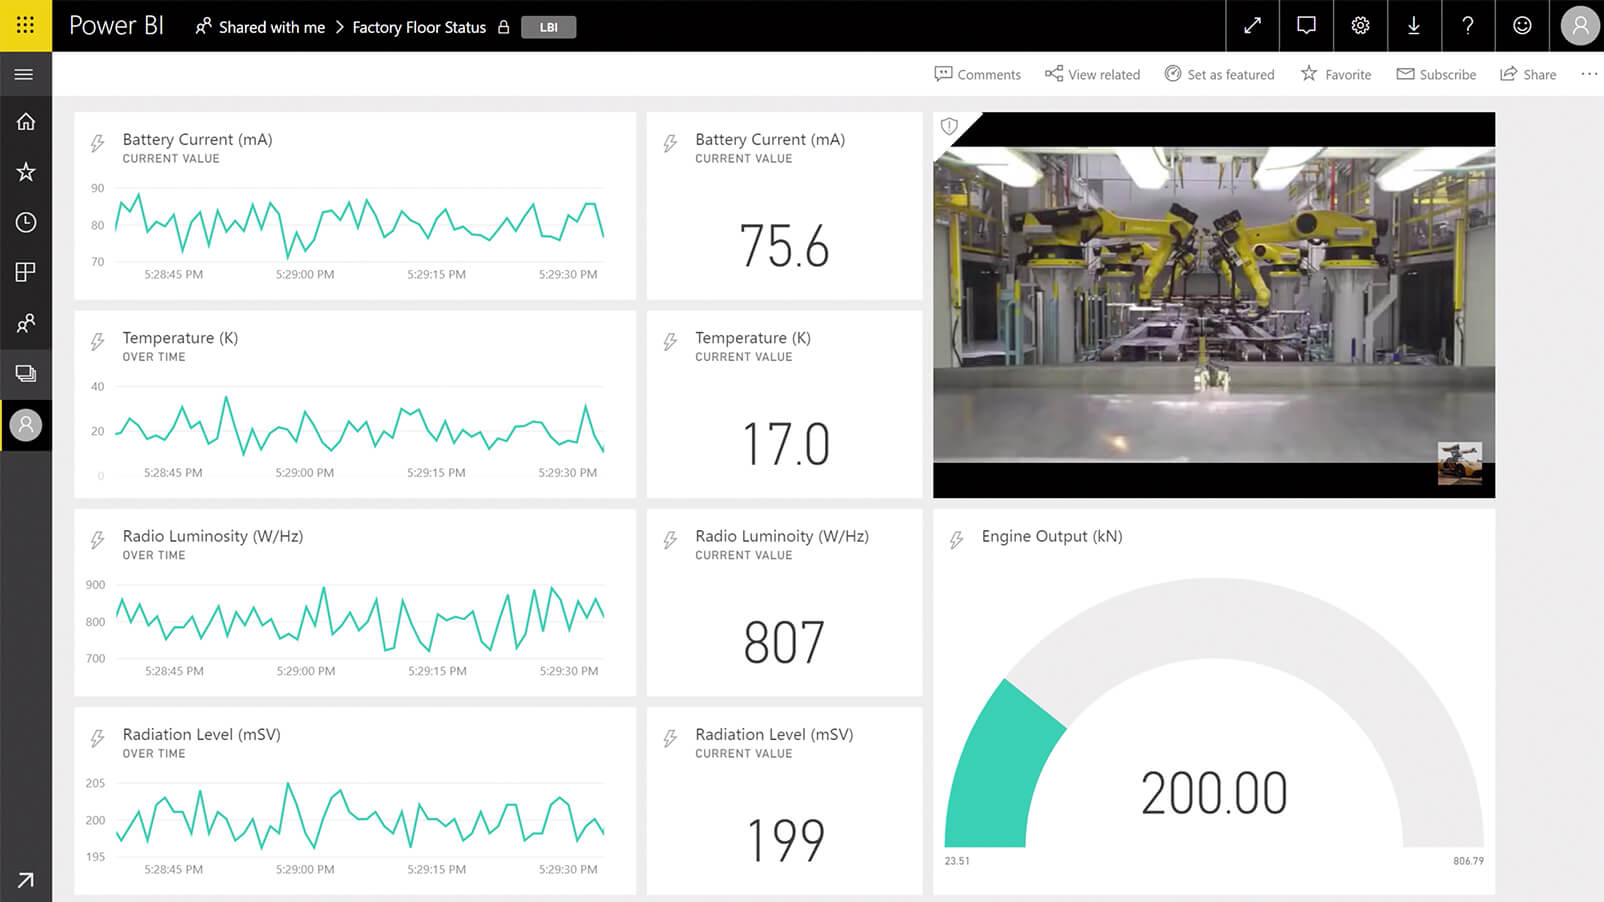 Video showing streaming analytics in real time